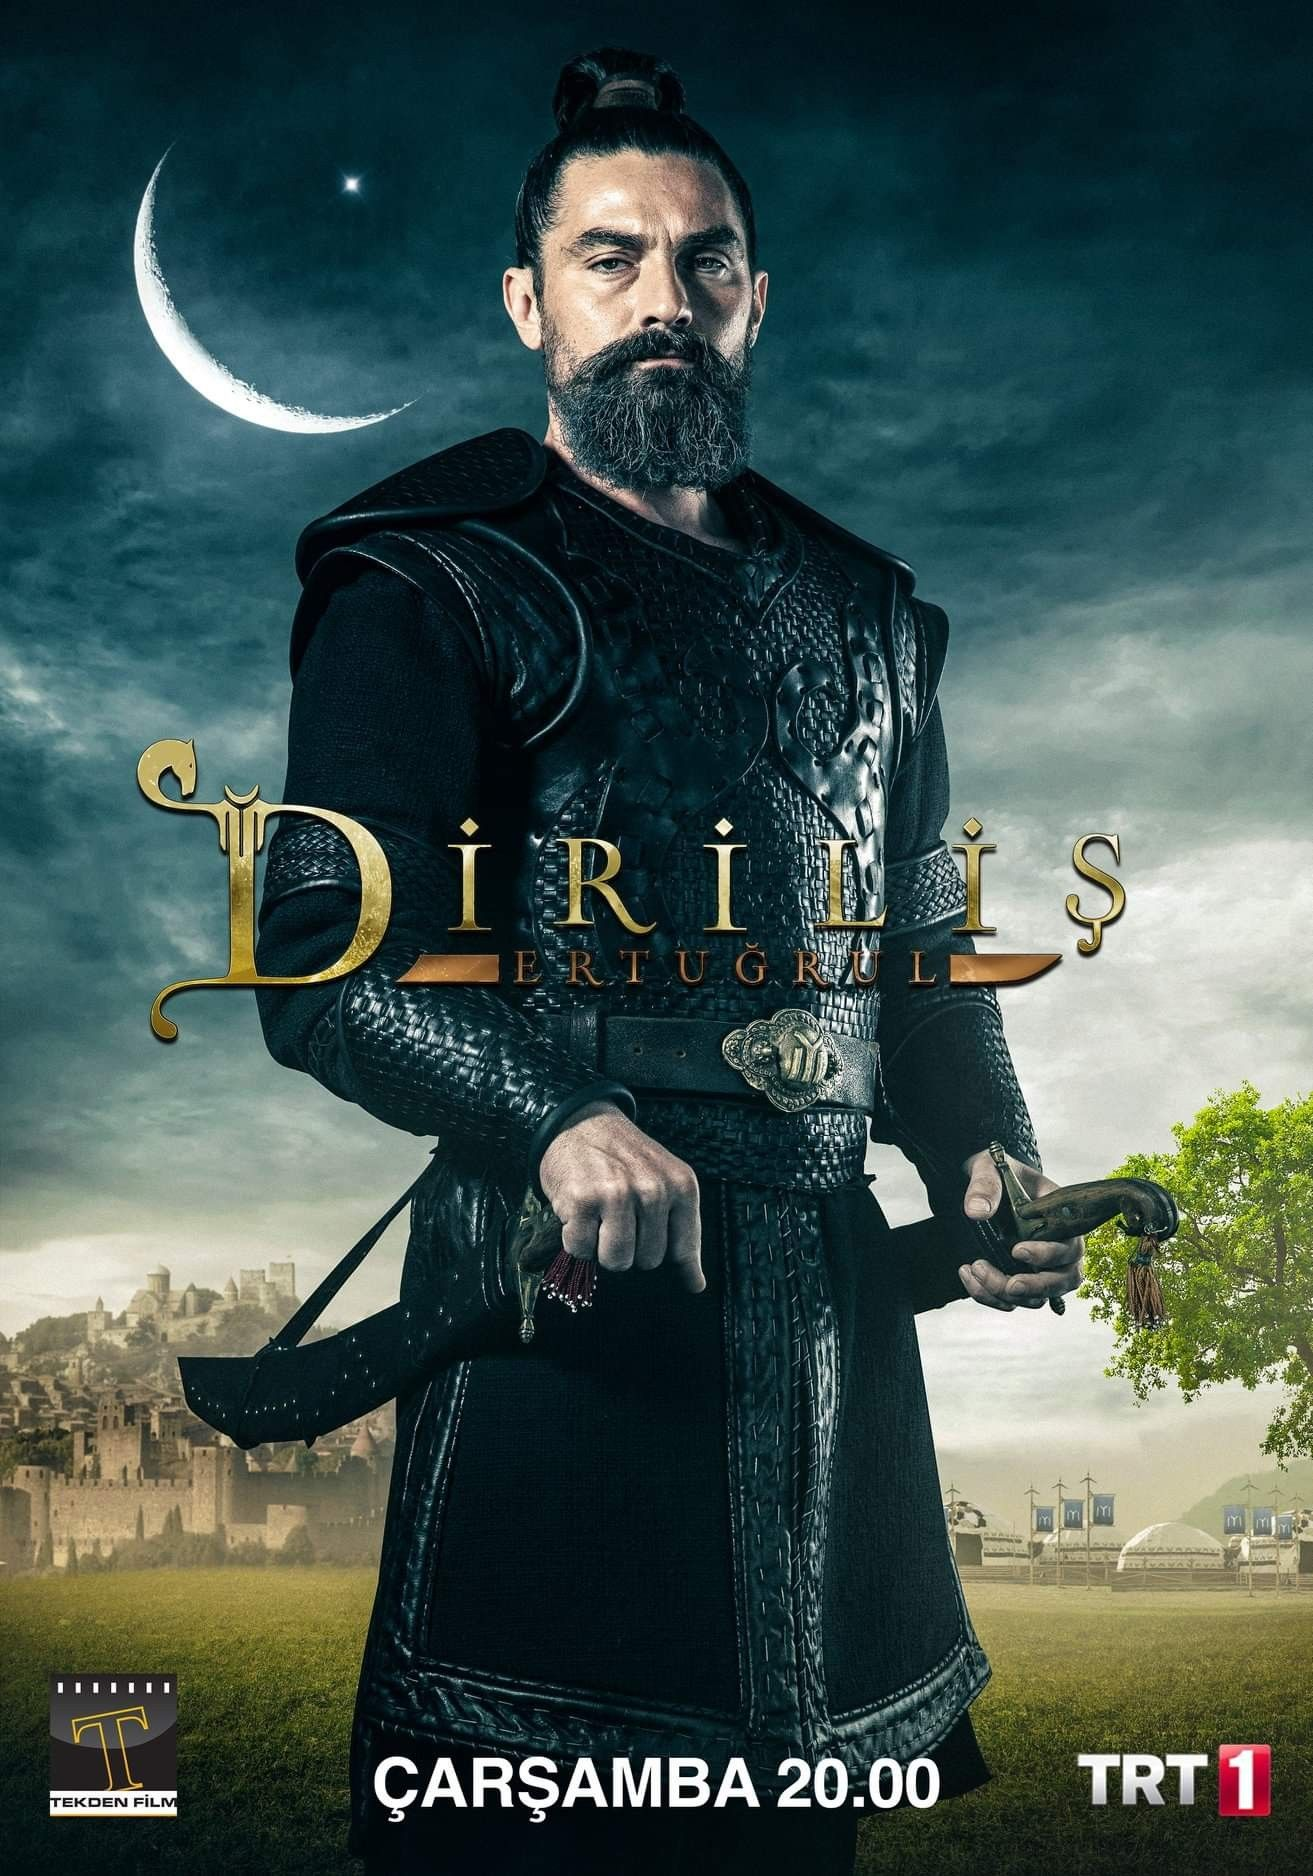 Dirilis Ertugrul, season 5 | Ertugrul in 2019 | Movie posters, Movie